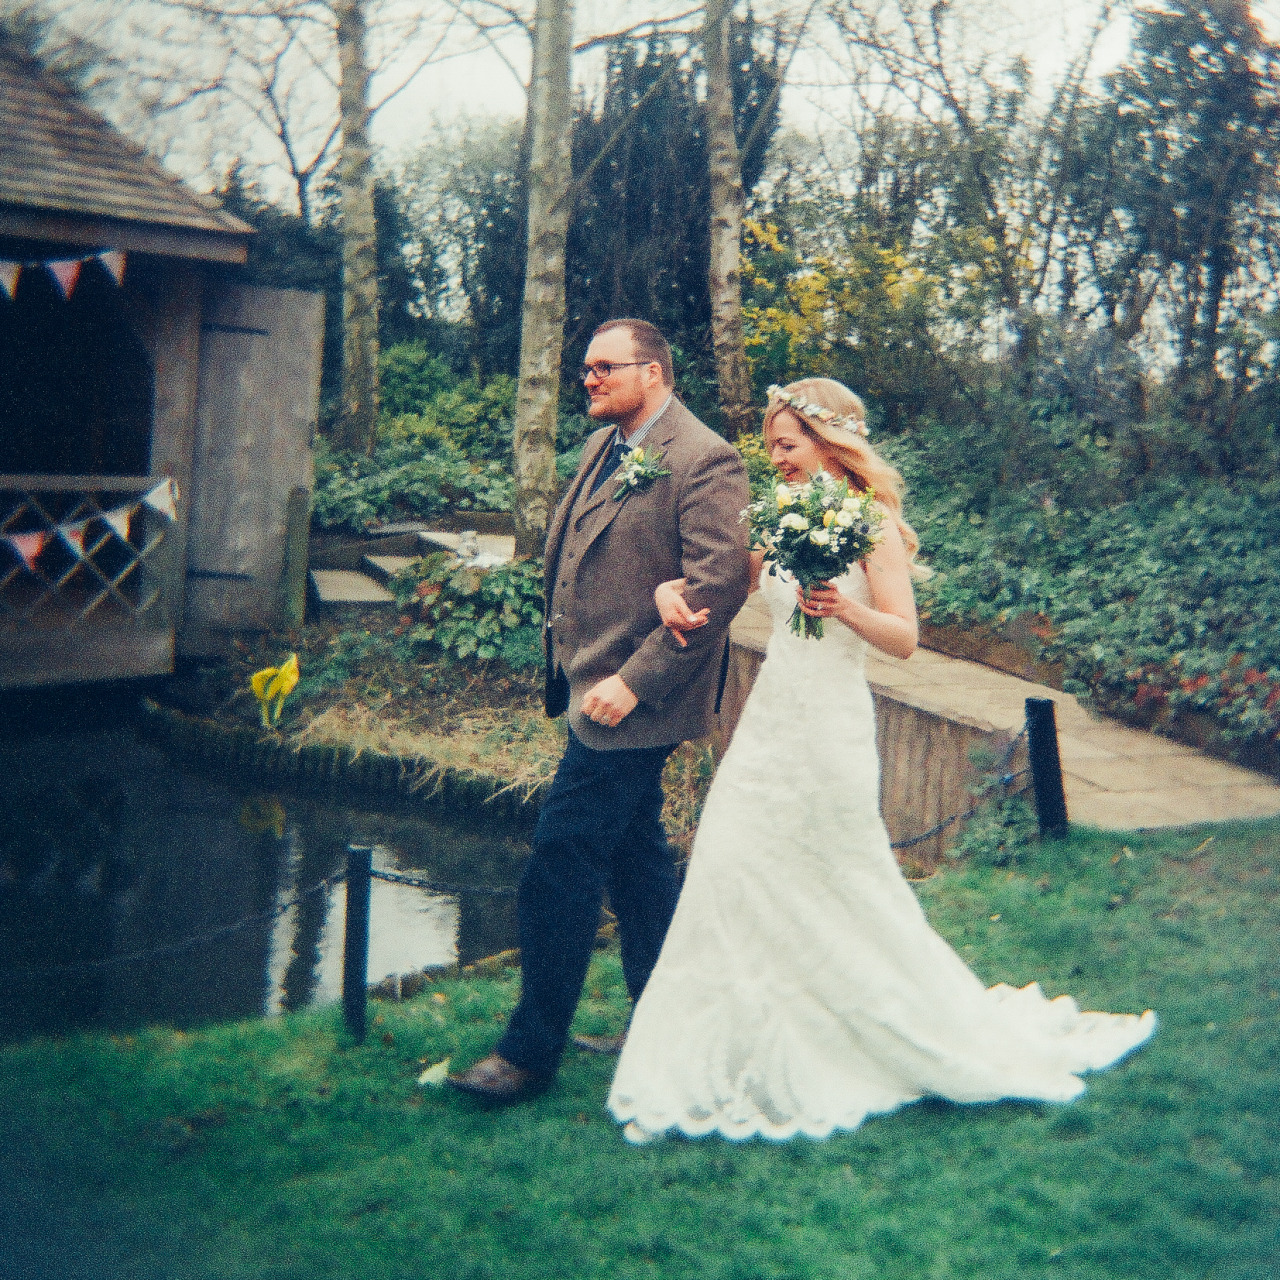 Holga wedding film